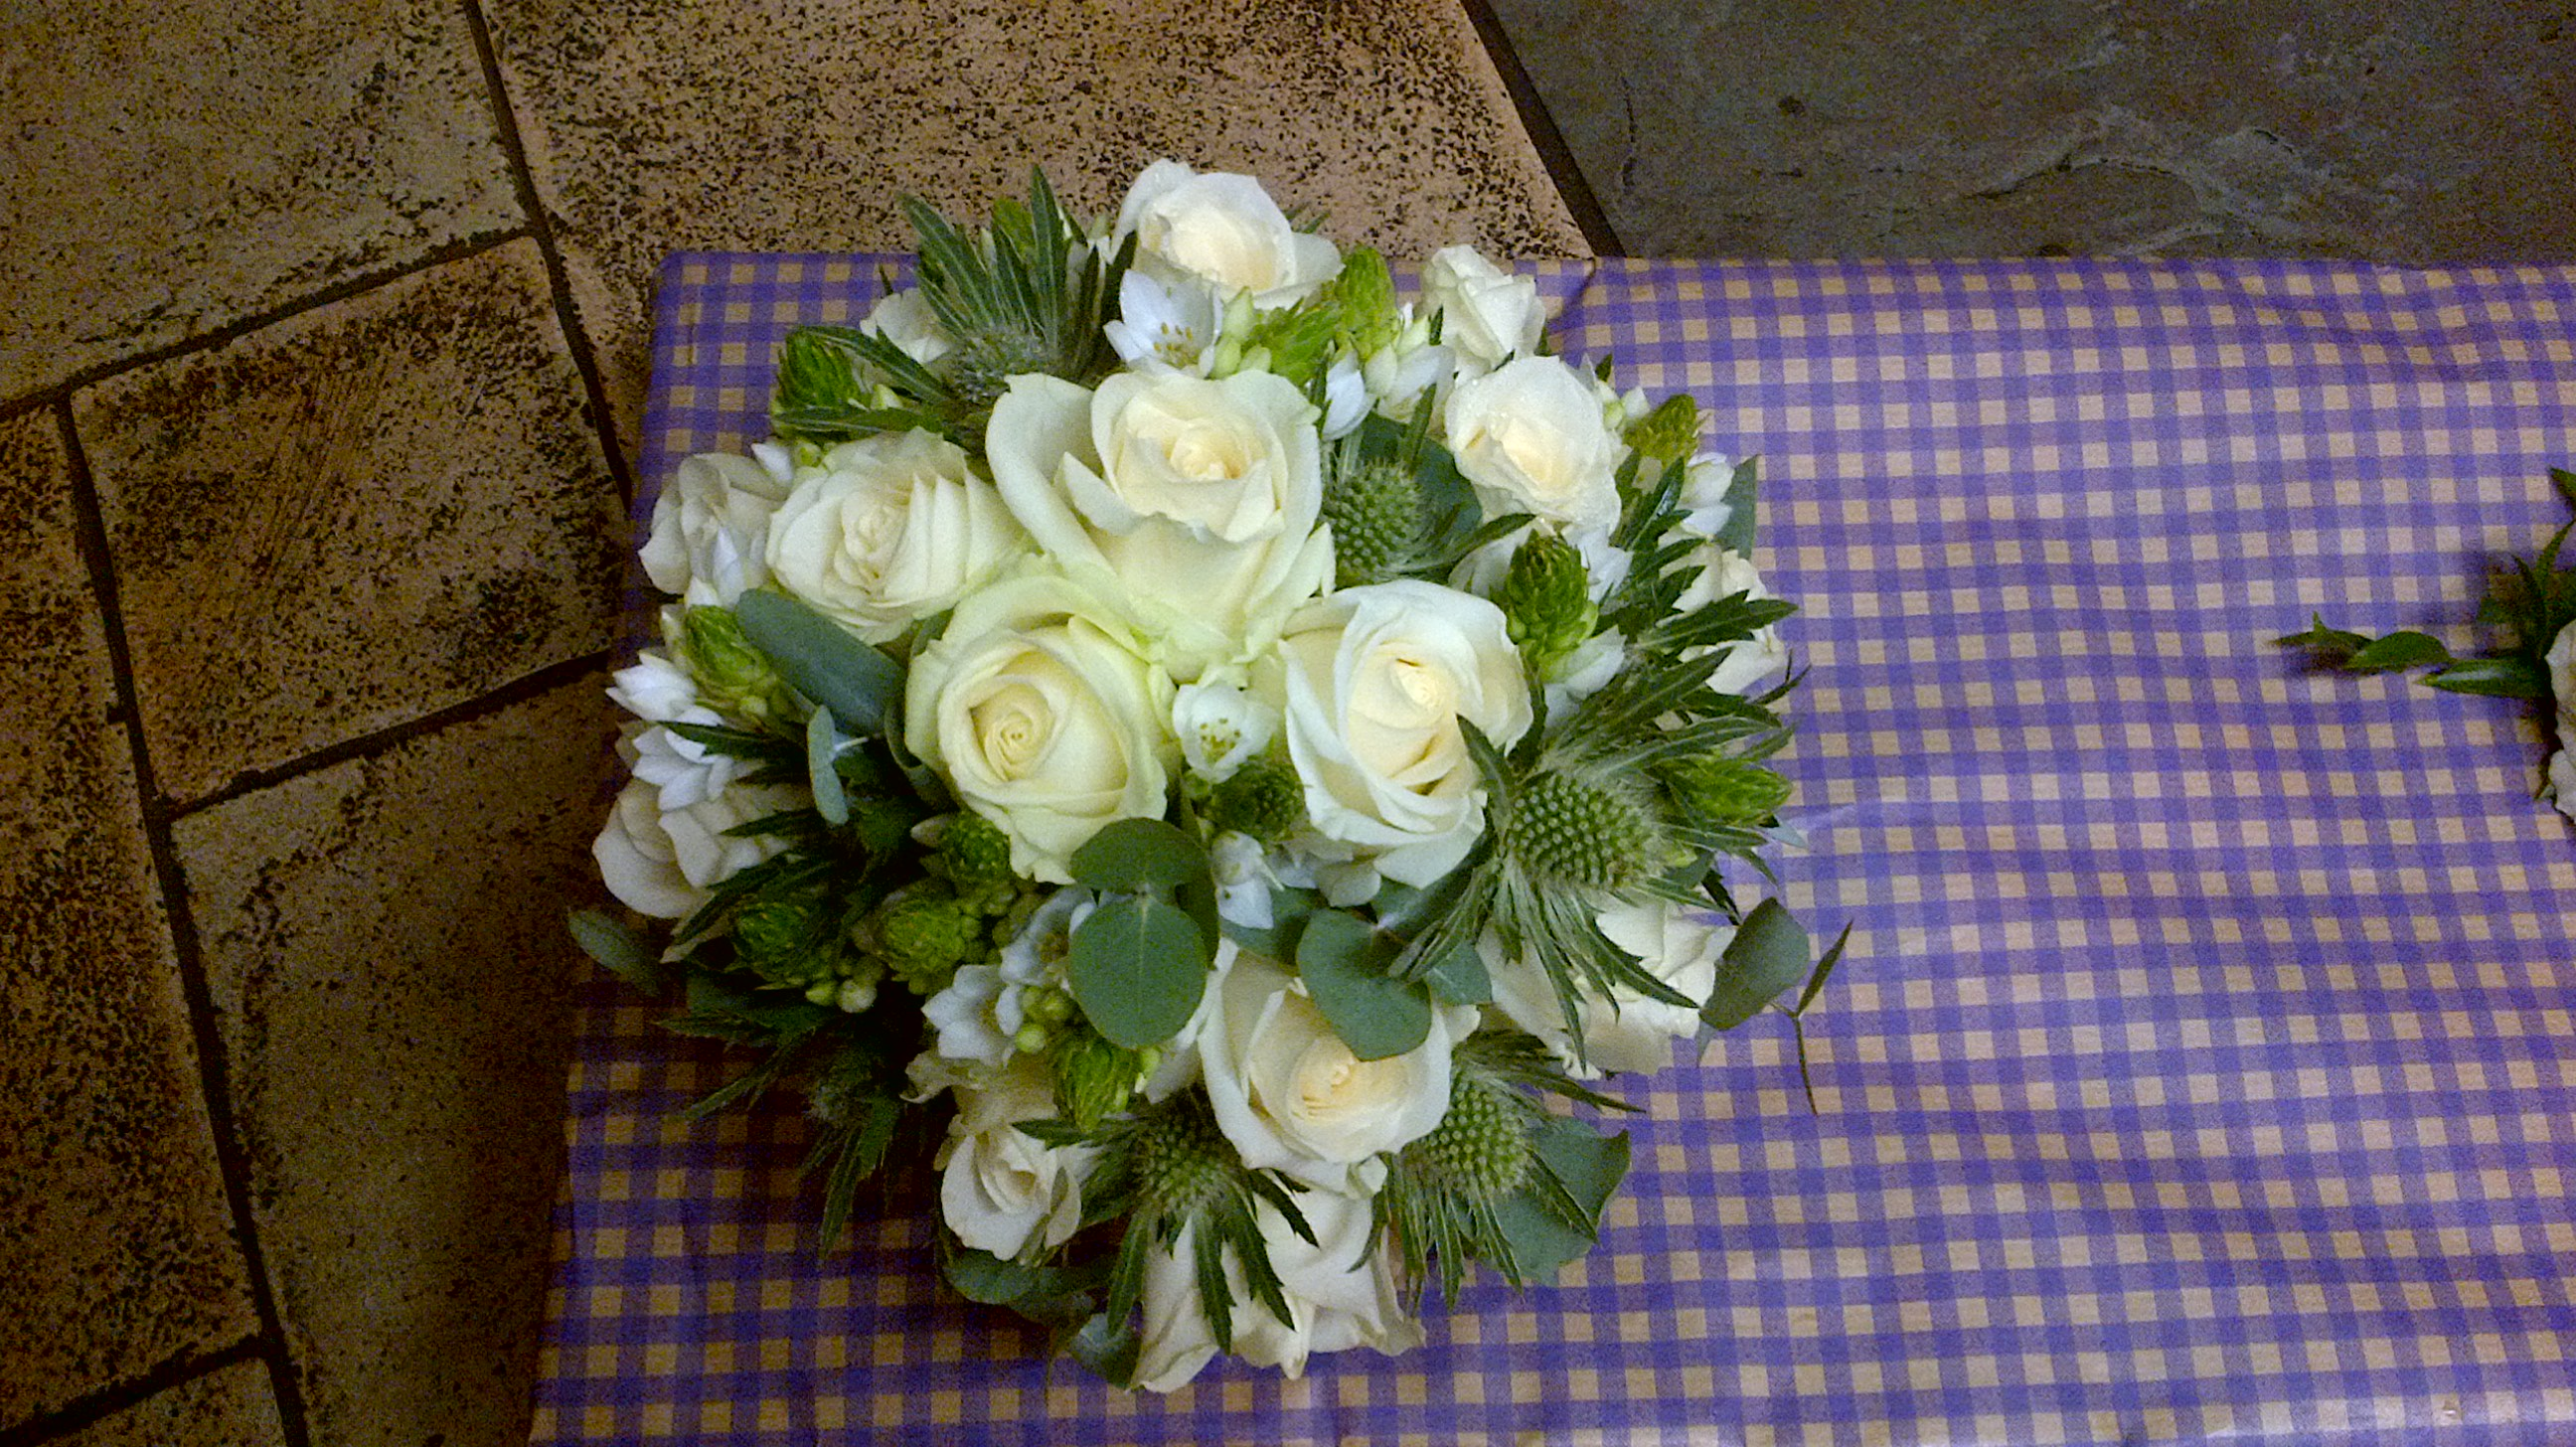 Send Flowers, By Hazel's Flower House, Perth, Scotland.